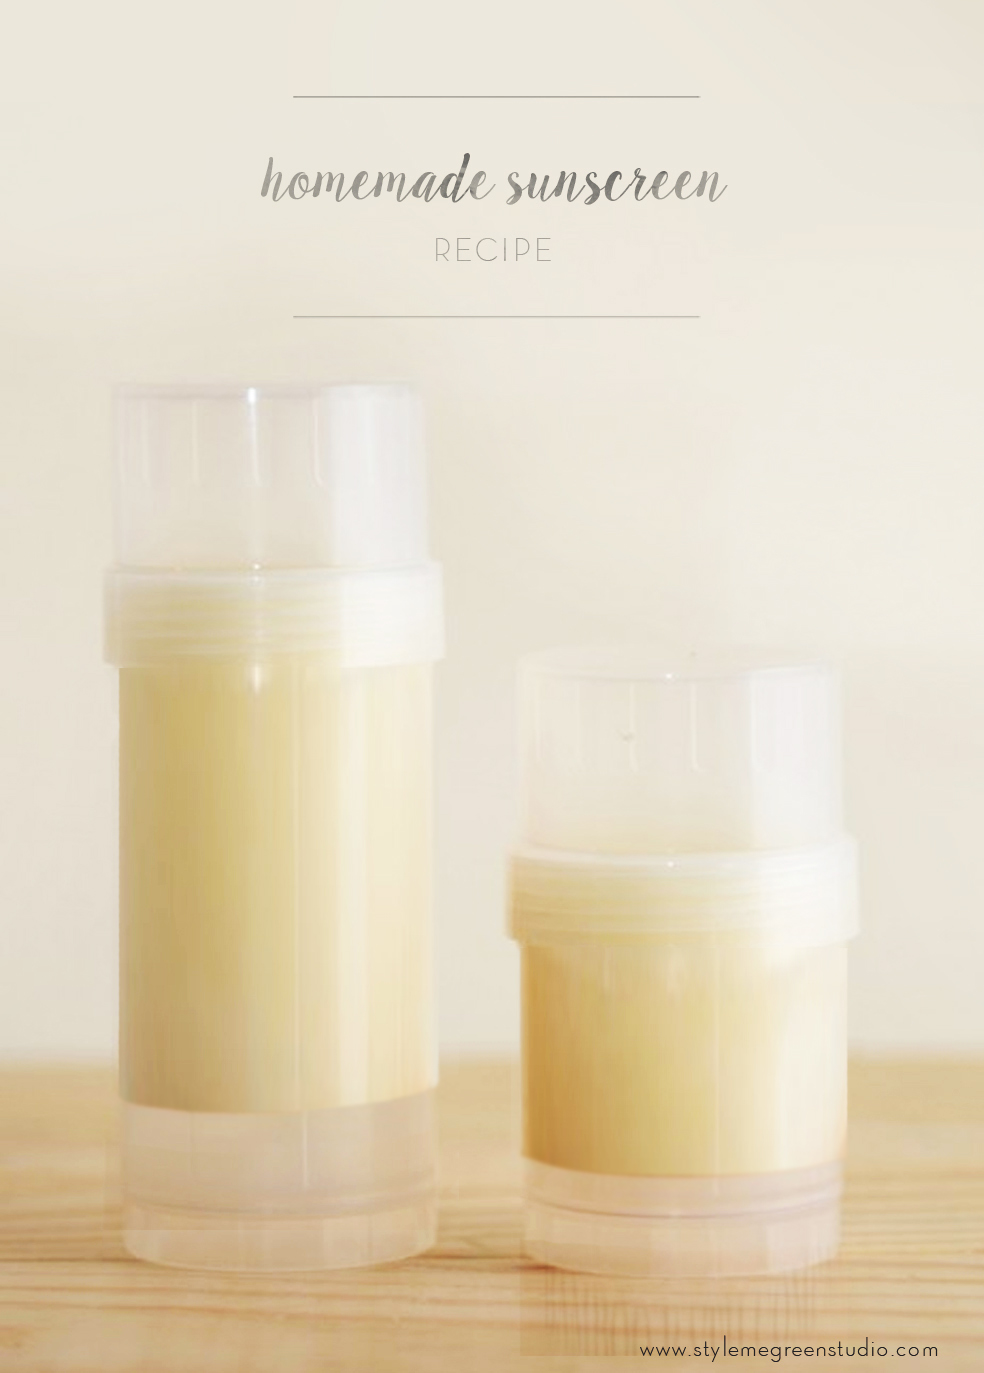 homemade sunscreen recipe1.jpg